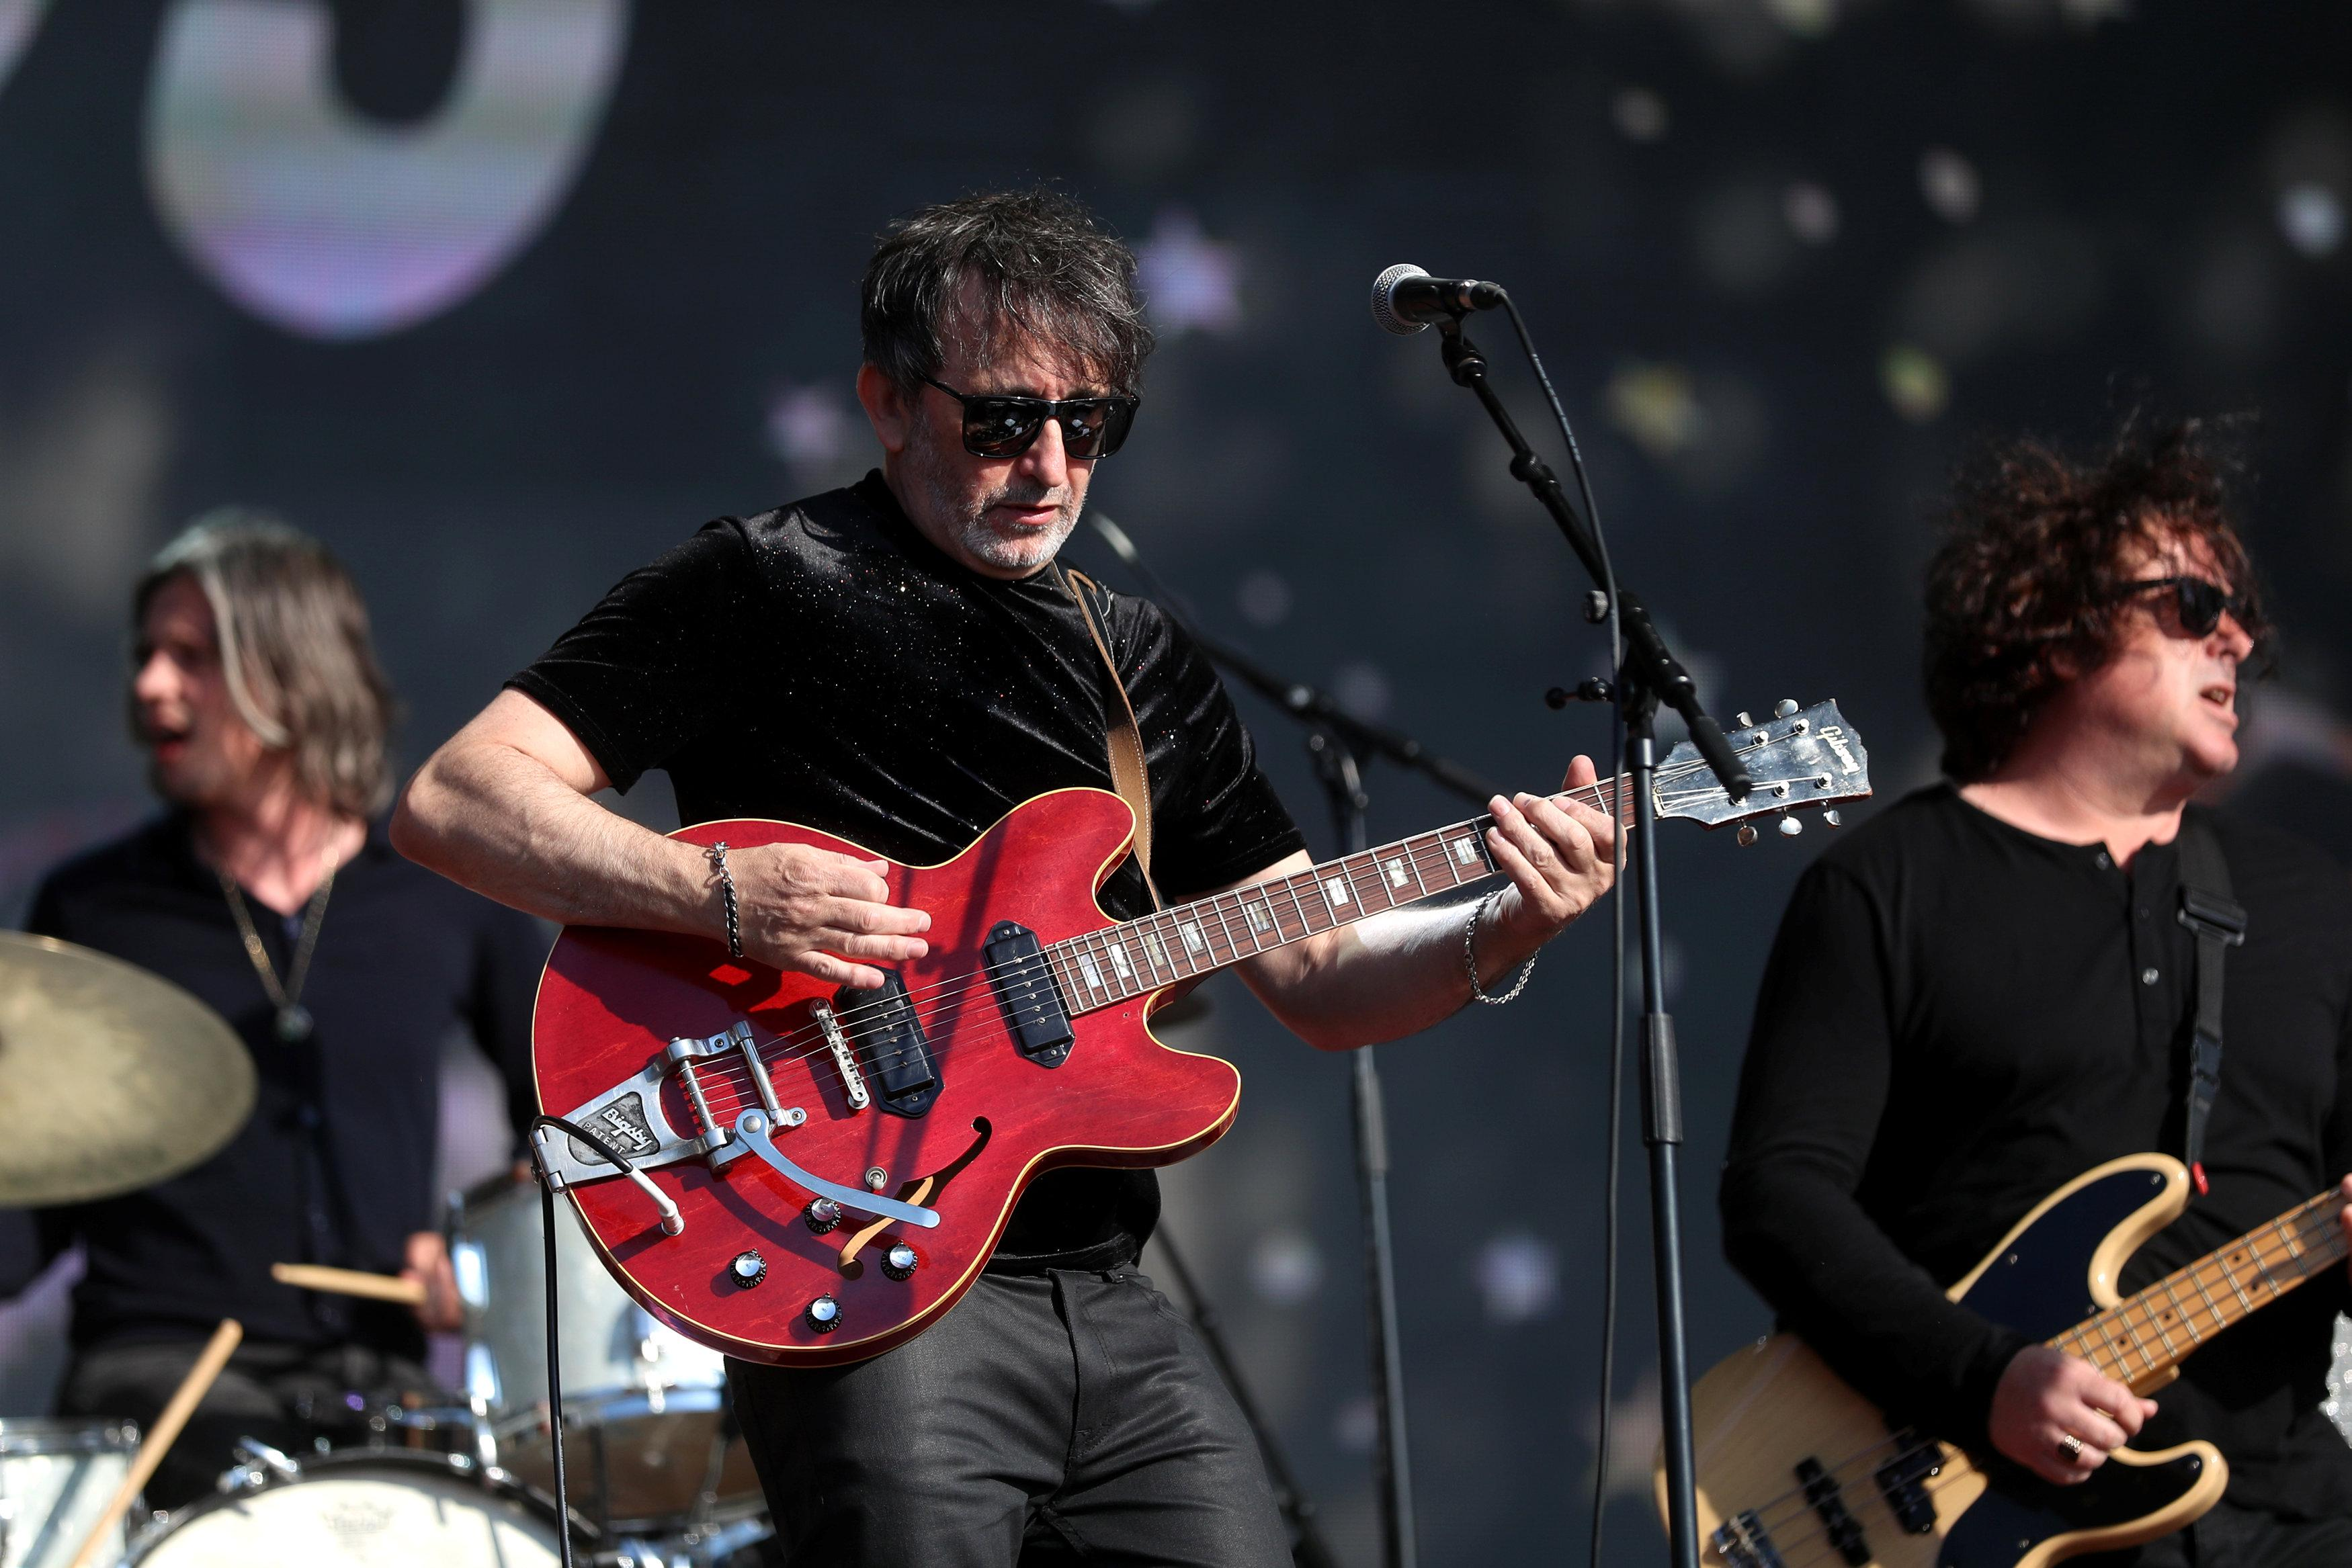 Ian Broudie sings 'it's coming home' in Hyde Park 22 years after making the hit song for Euro 96